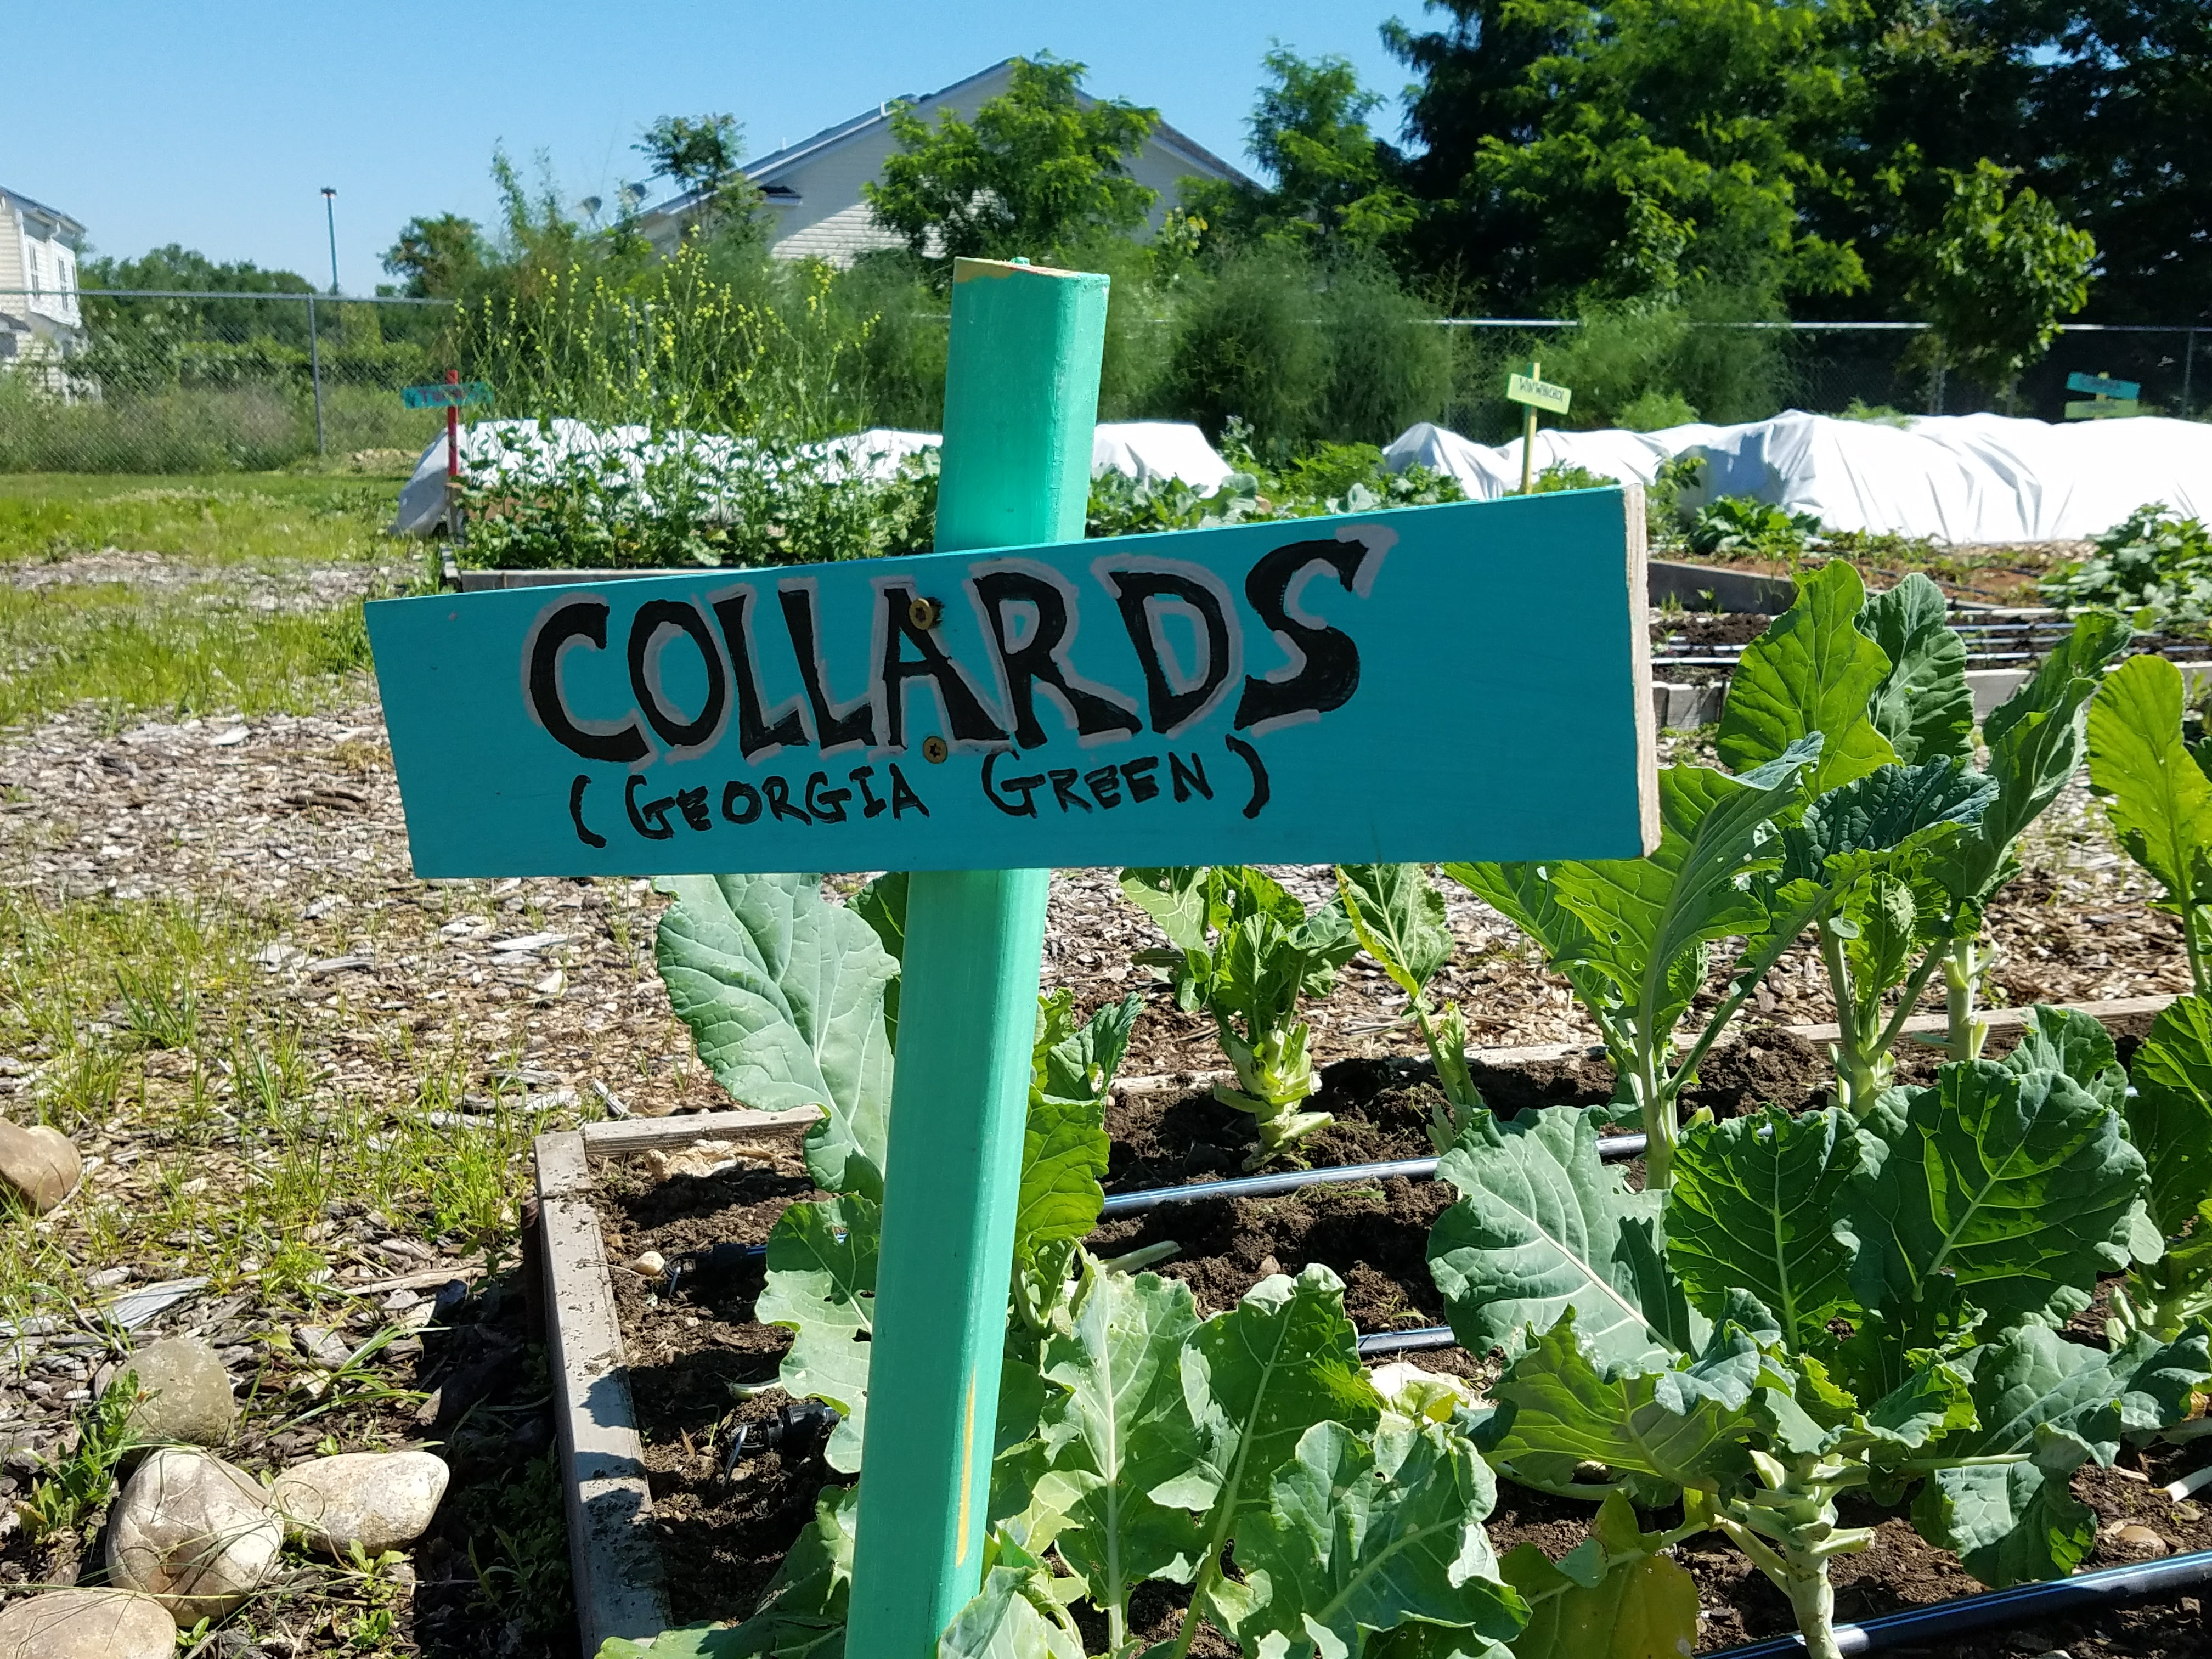 CAFB grows organic produce like Georgia Green Collards in its Urban Demonstration Garden.